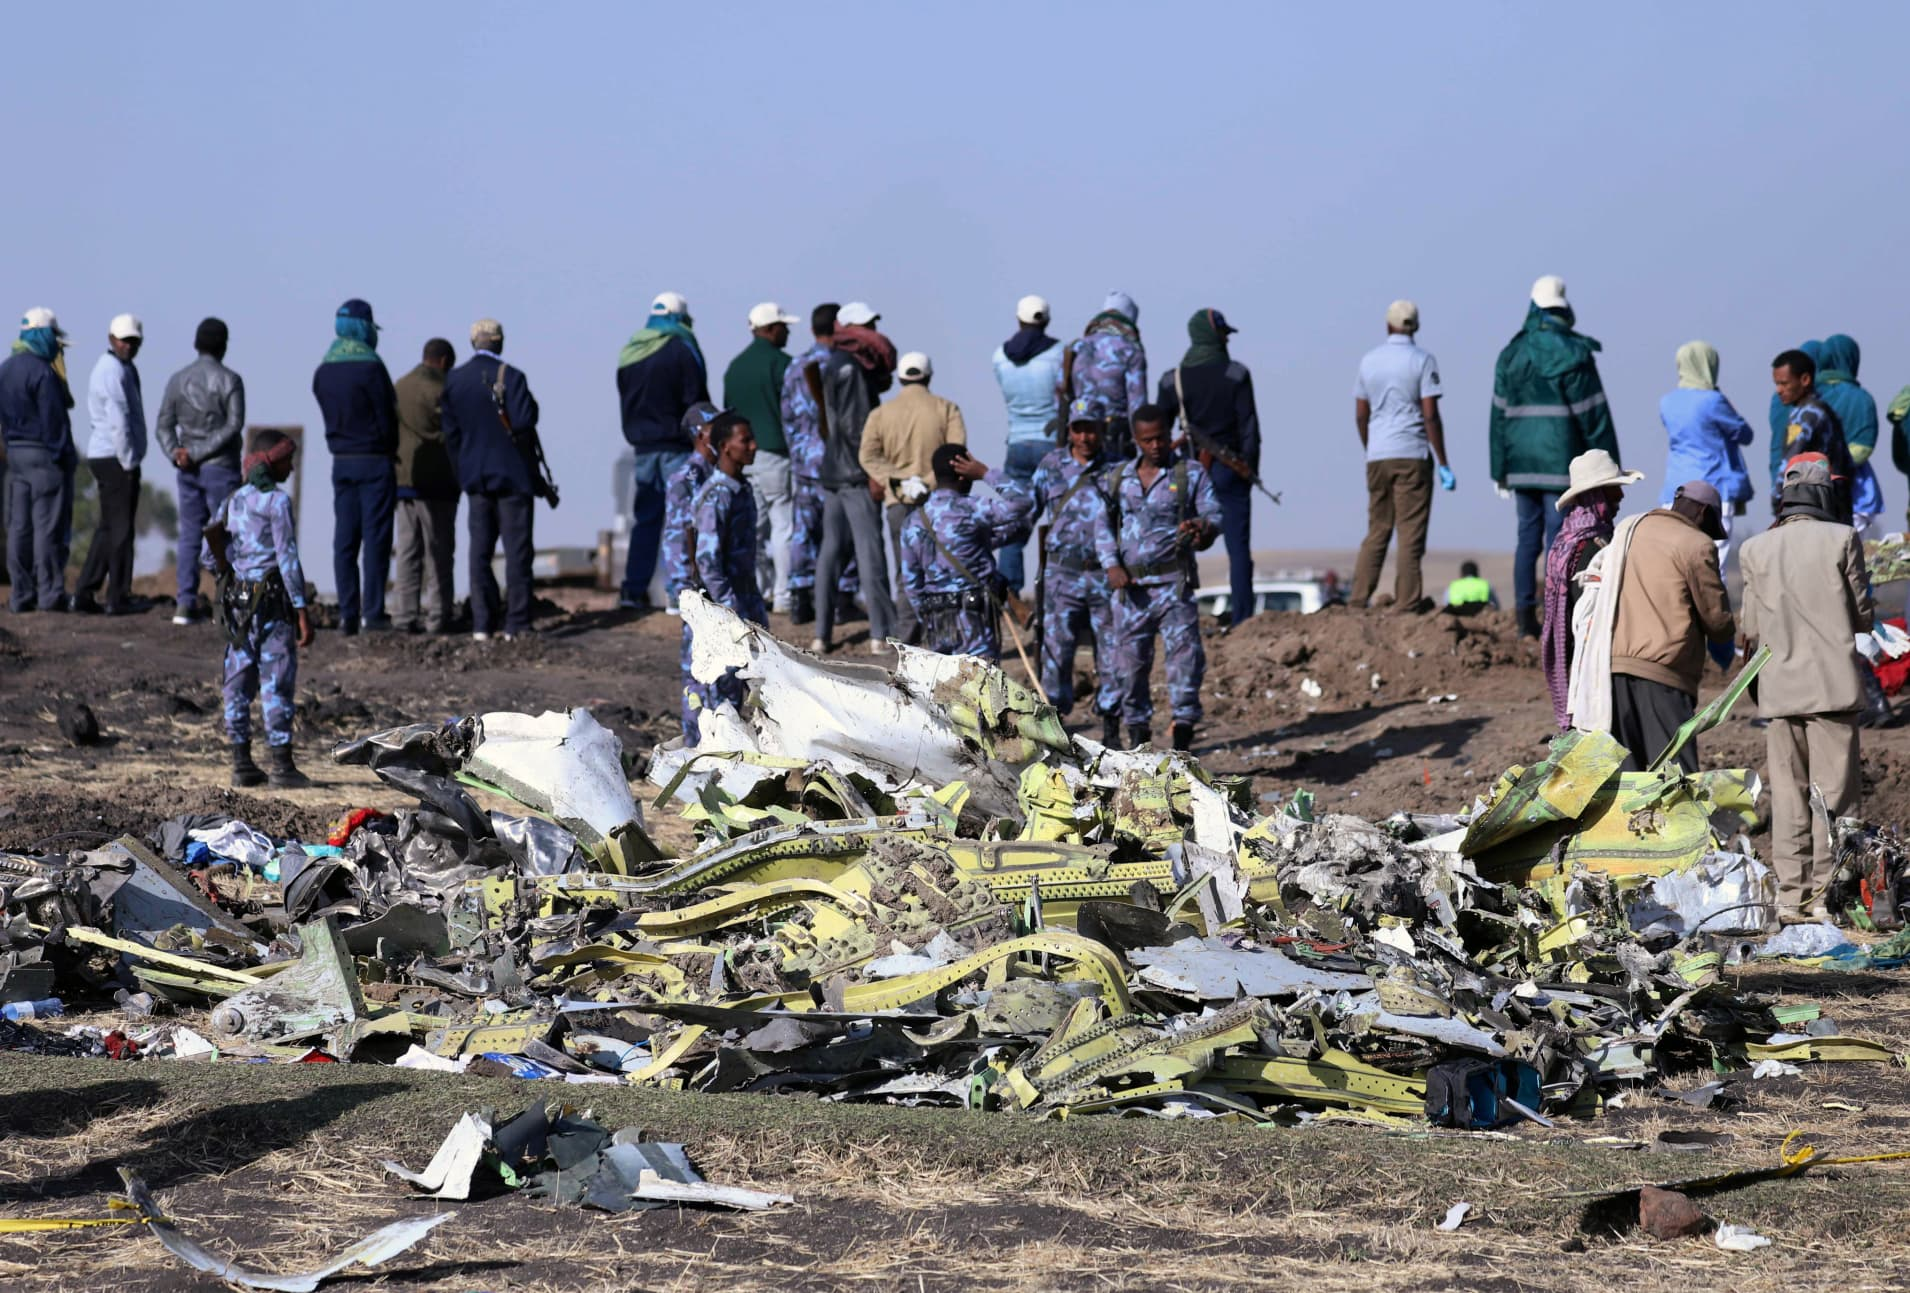 RT: Ethiopia plane crash Boeing 737